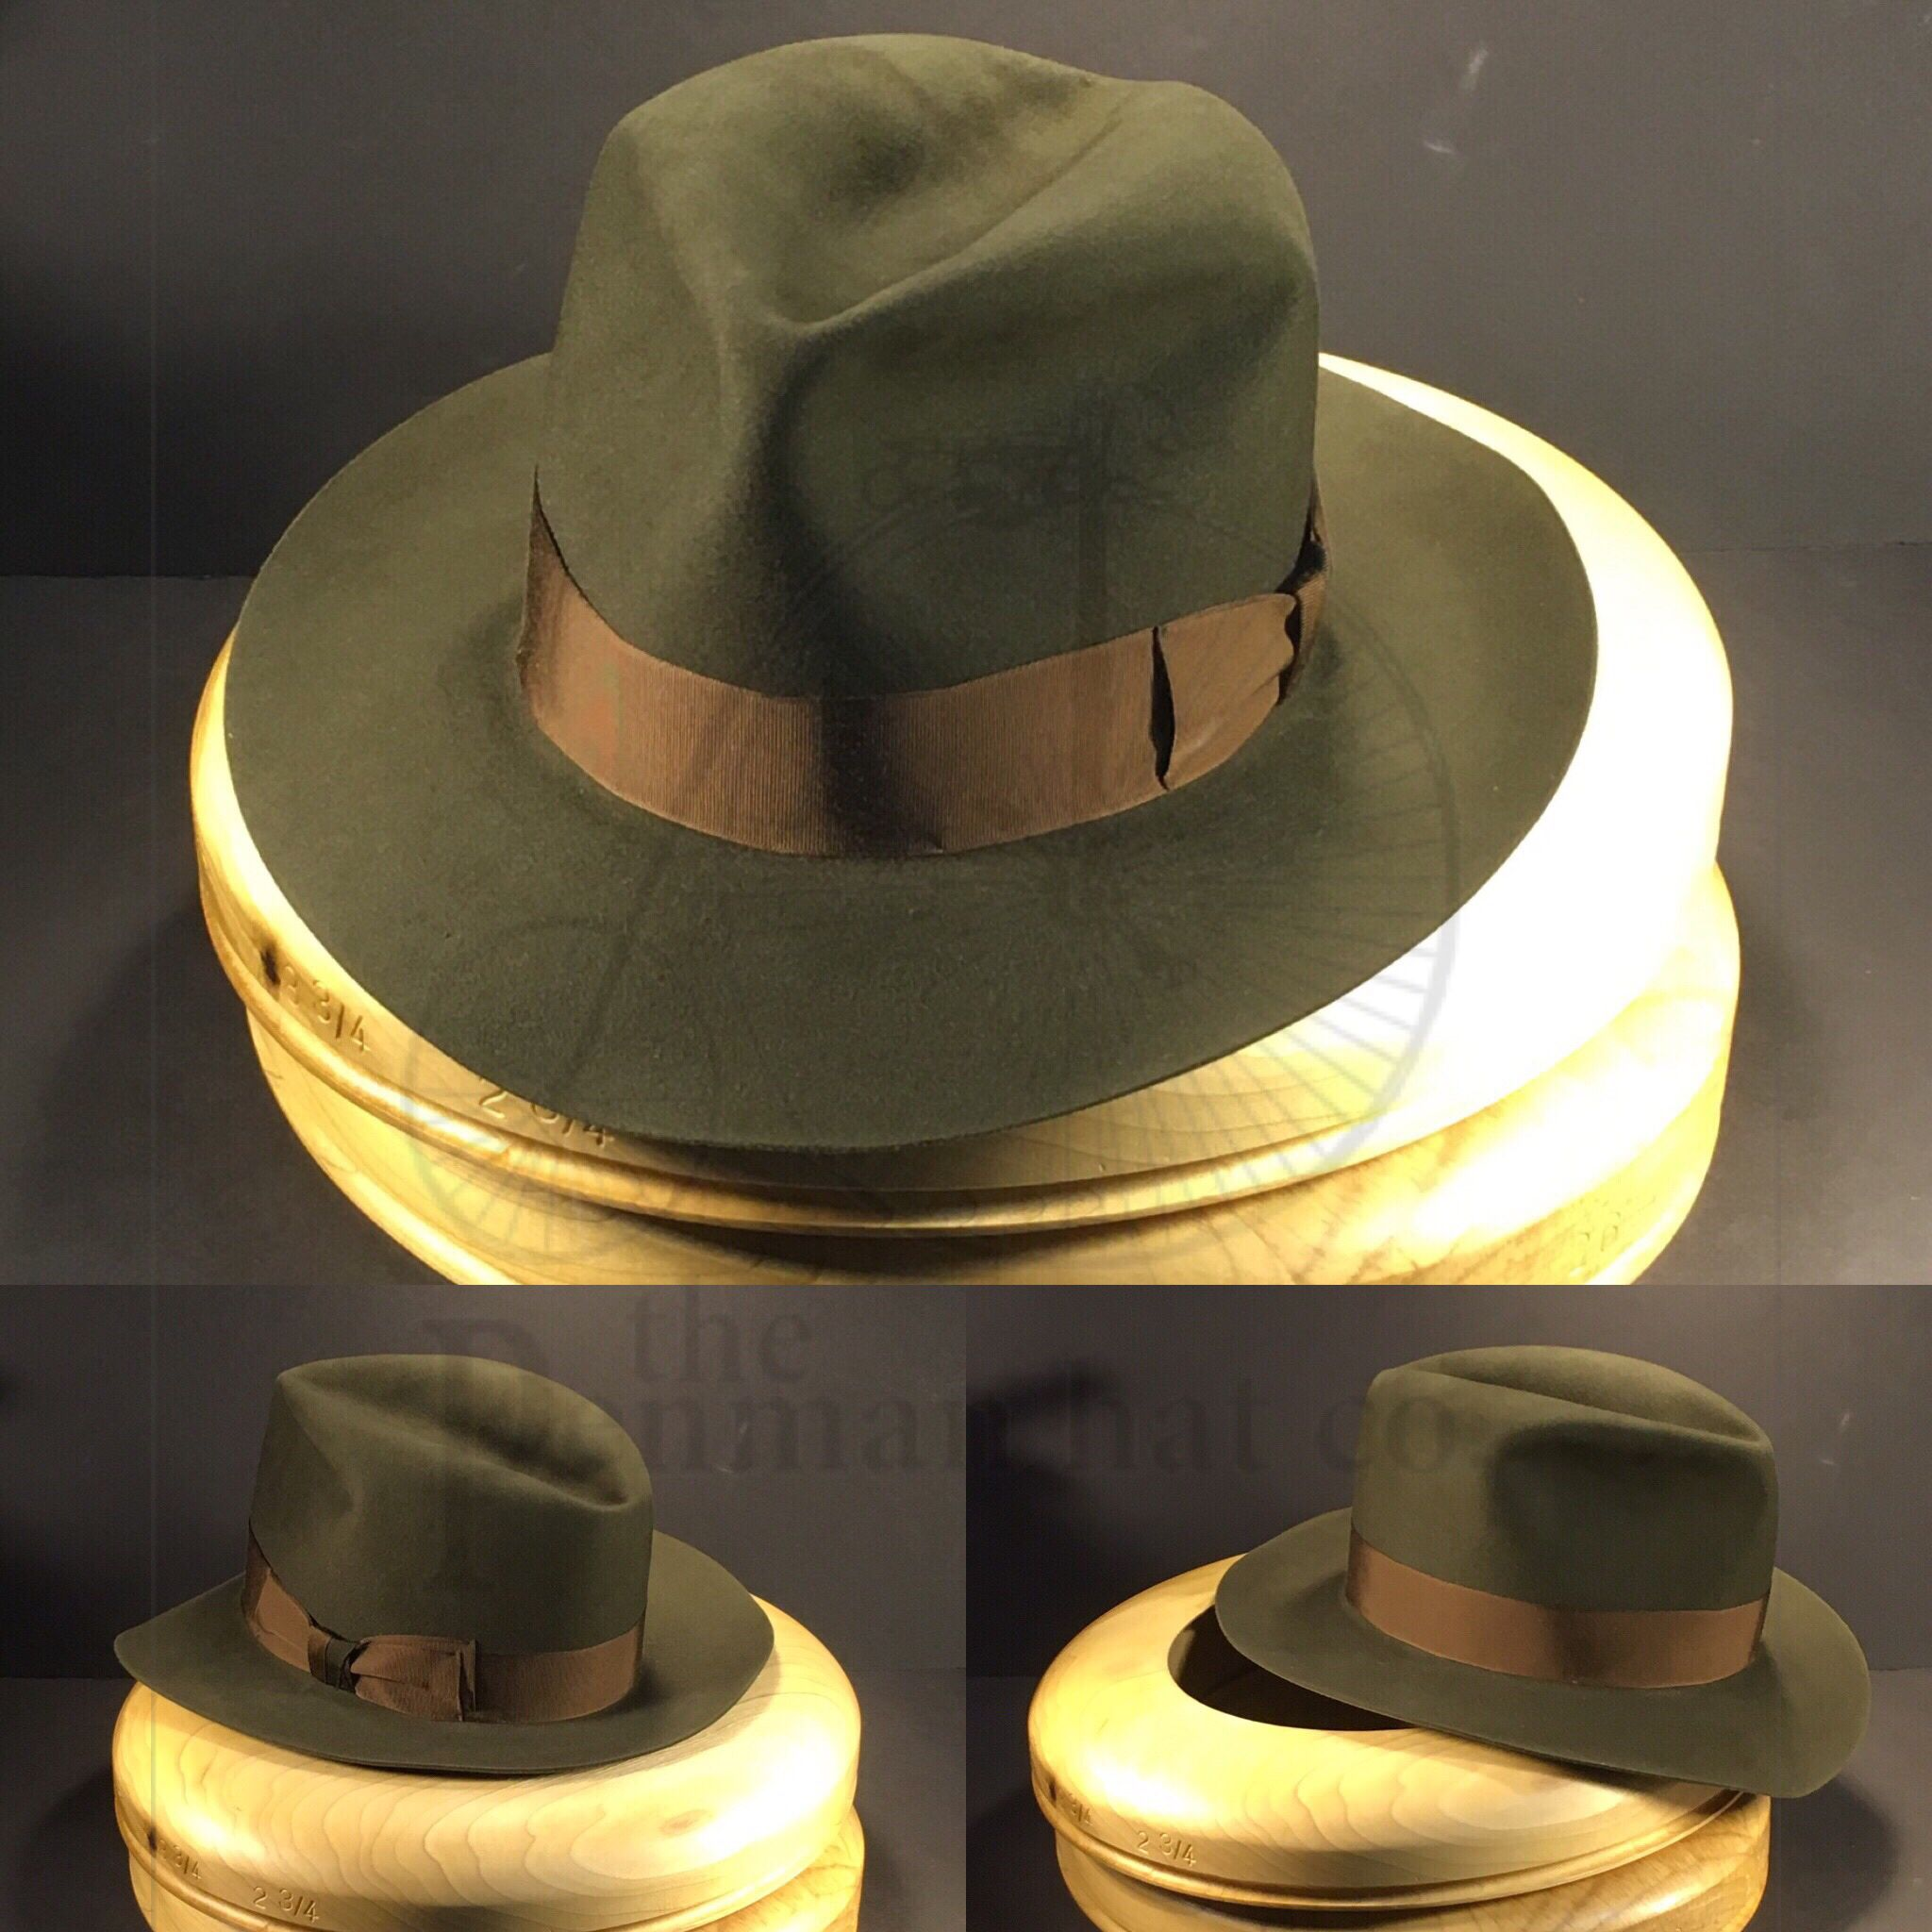 1dc75fa51dc2f Just rapping up the final touches of this Dark Moss with this vintage  Copper grosgrain ribbon.  OnlyPenman  penmanhats